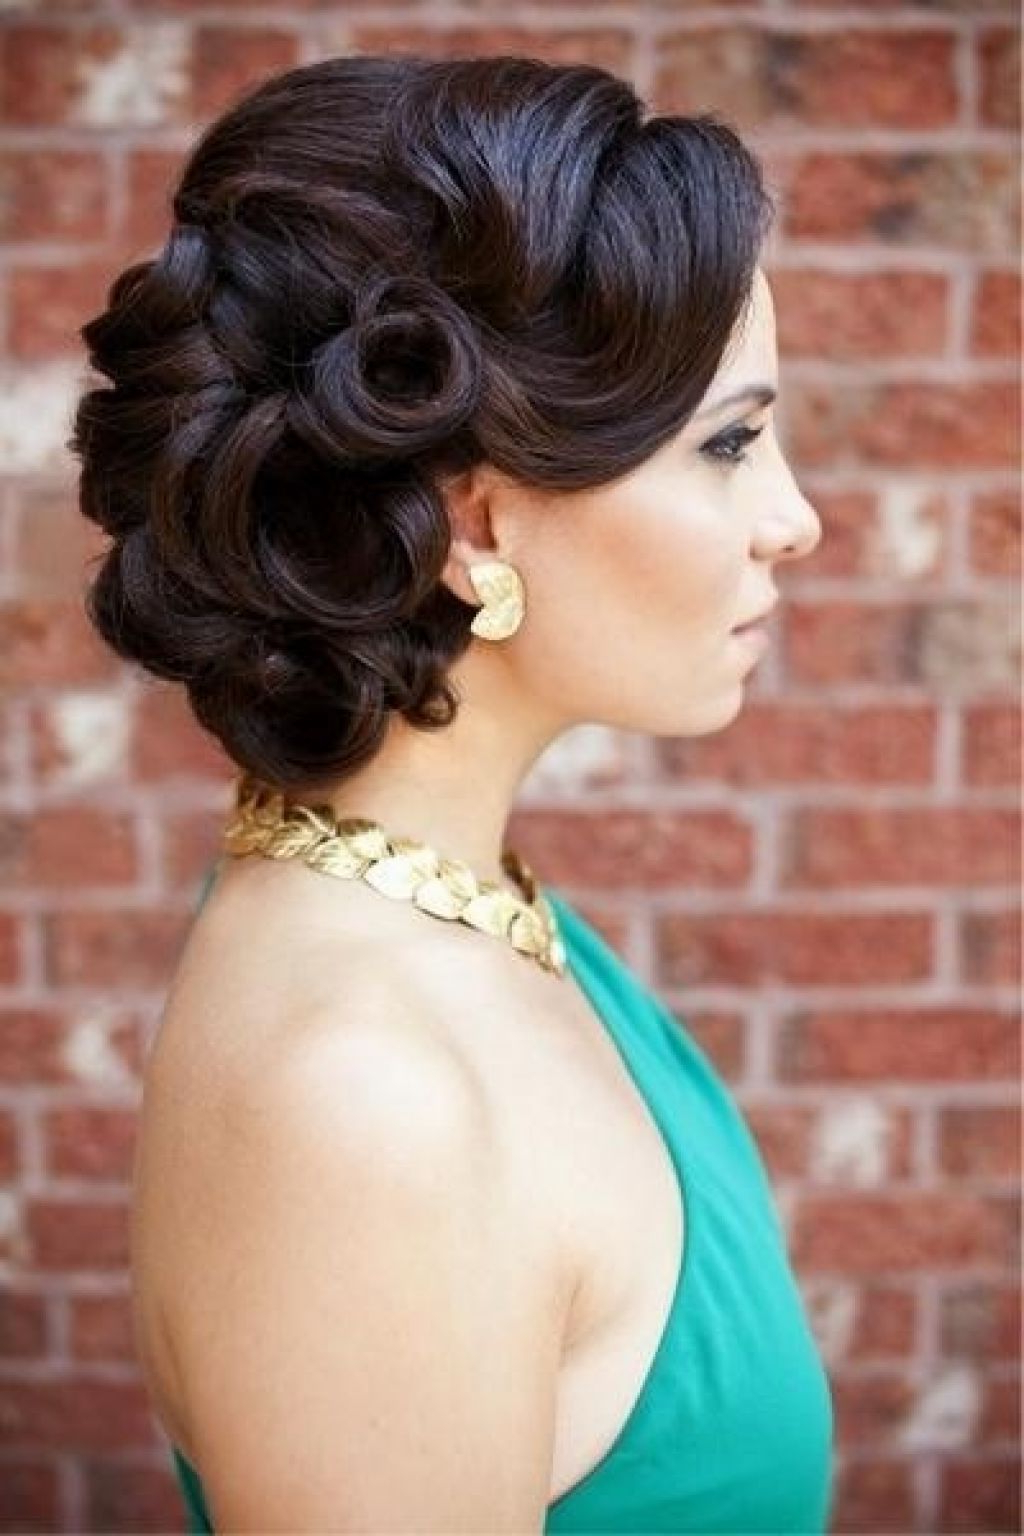 Most Popular Vintage Asymmetrical Wedding Hairstyles Intended For Vintage Wedding Updos For Long Hair1 Vintage Updos For Long Hair (View 9 of 20)